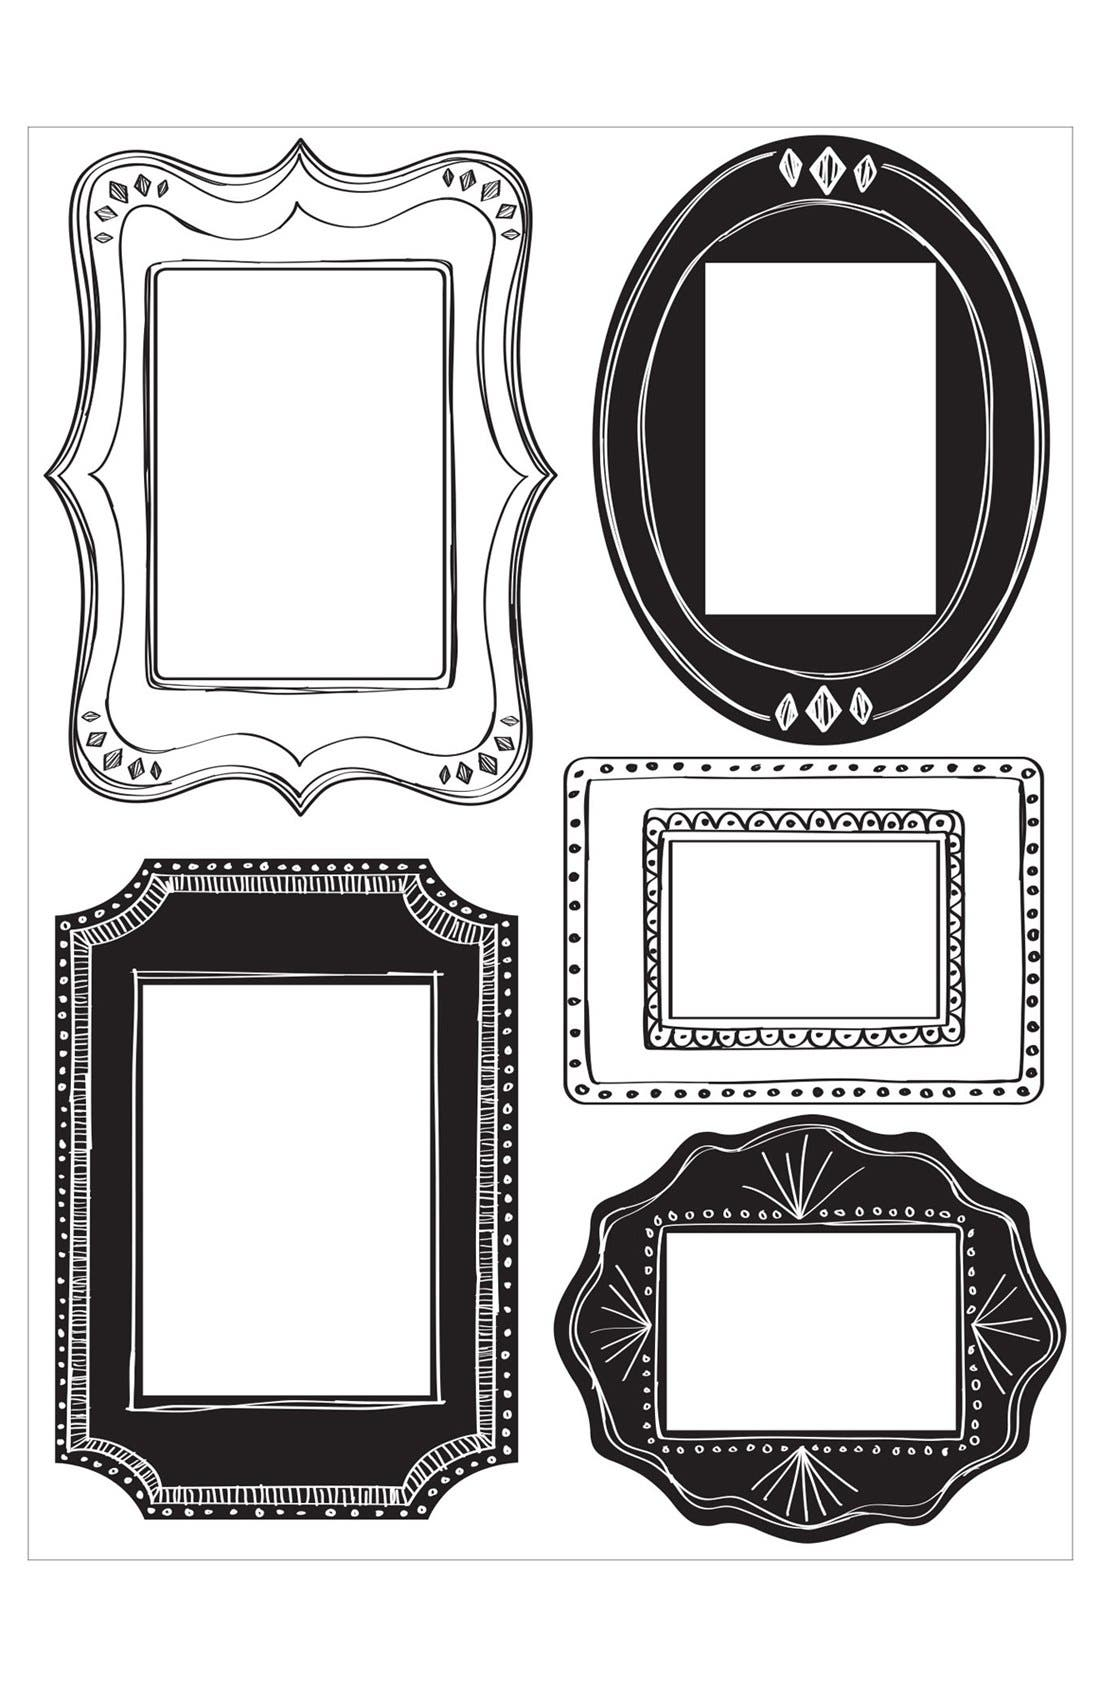 Alternate Image 1 Selected - Wallpops 'Sketch It' Wall Decal Frames (Set of 5)